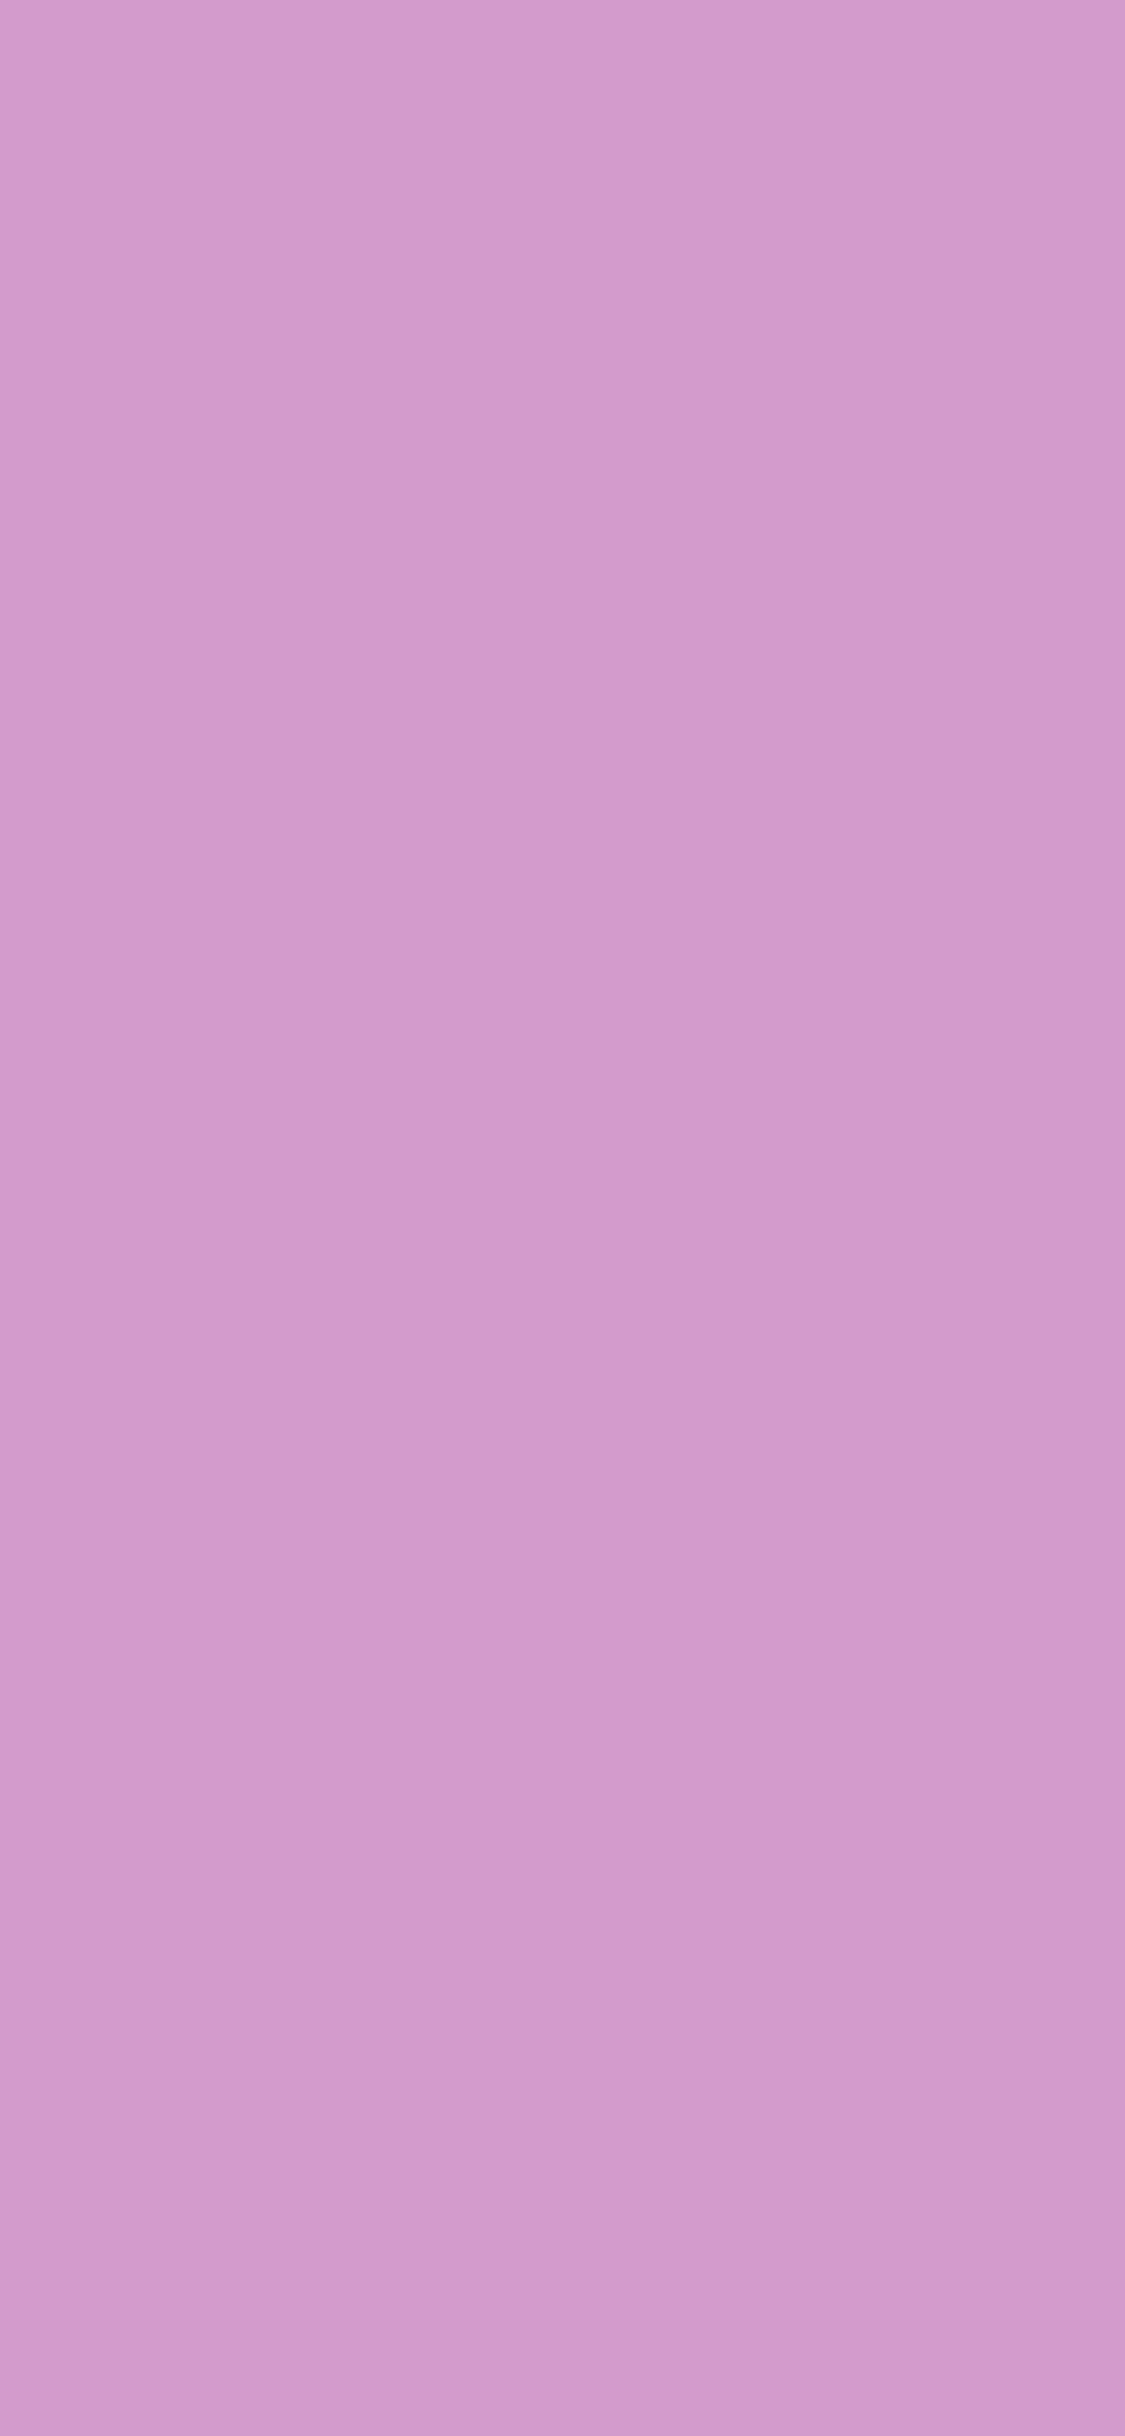 1125x2436 Light Medium Orchid Solid Color Background